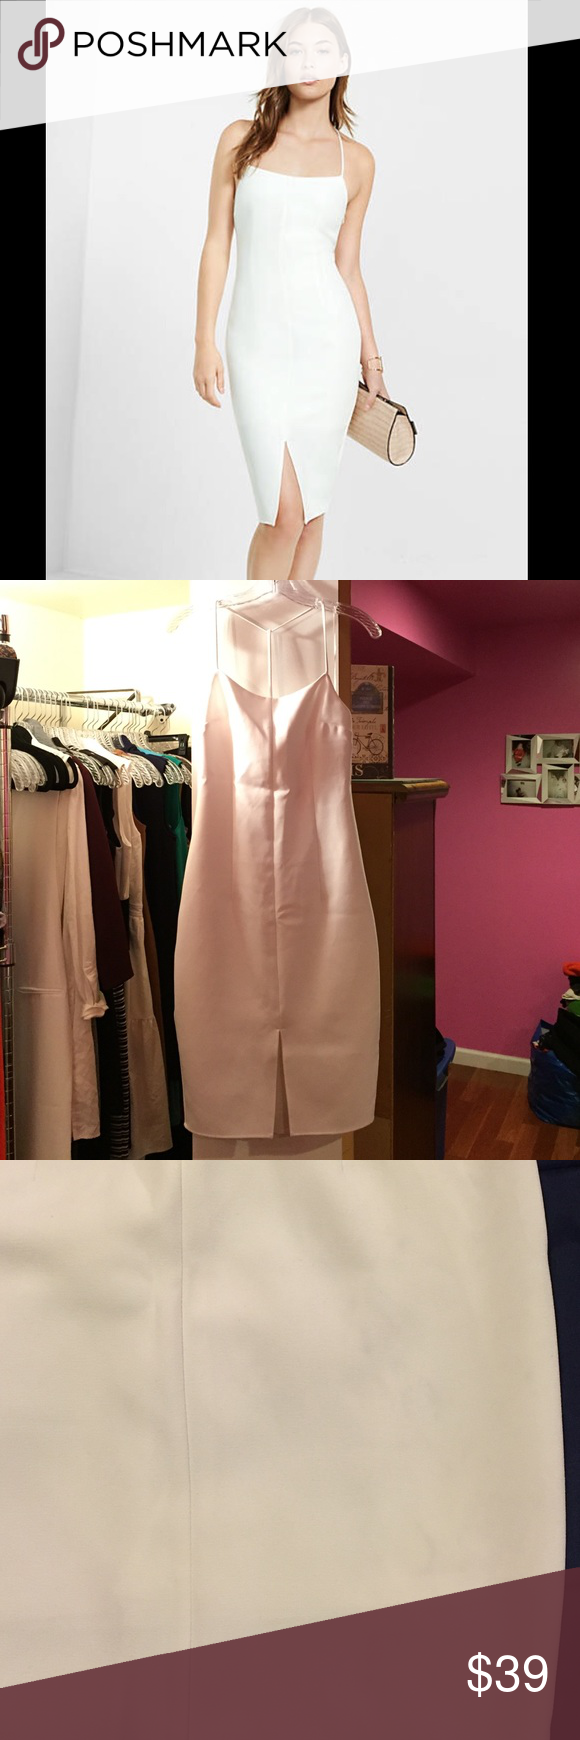 Express Front Split Dress White dress with halter t-strap. Zips on side. Lines. Very light marks from washing (picture #3). Worn once for bridal event. Express Dresses Midi